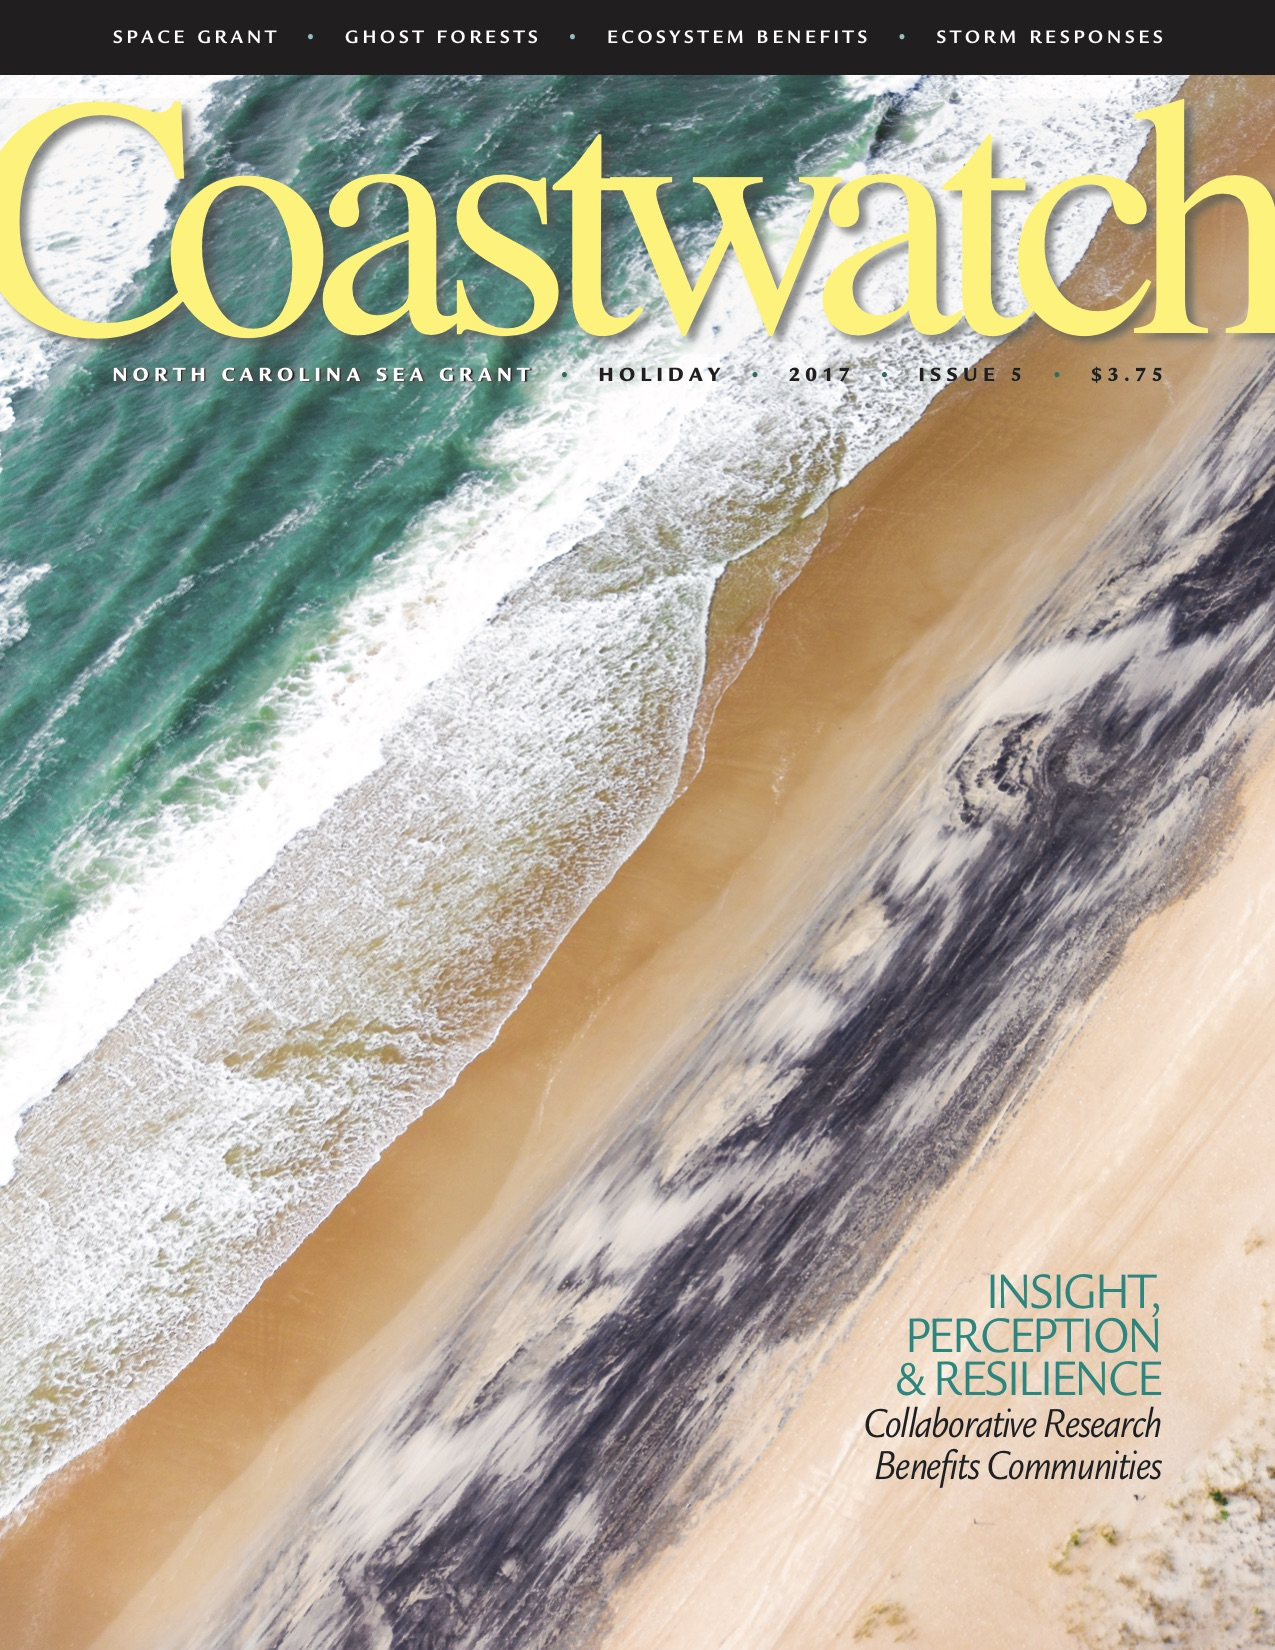 Coastwatch Nov-Dec 2017 cover (1).jpg